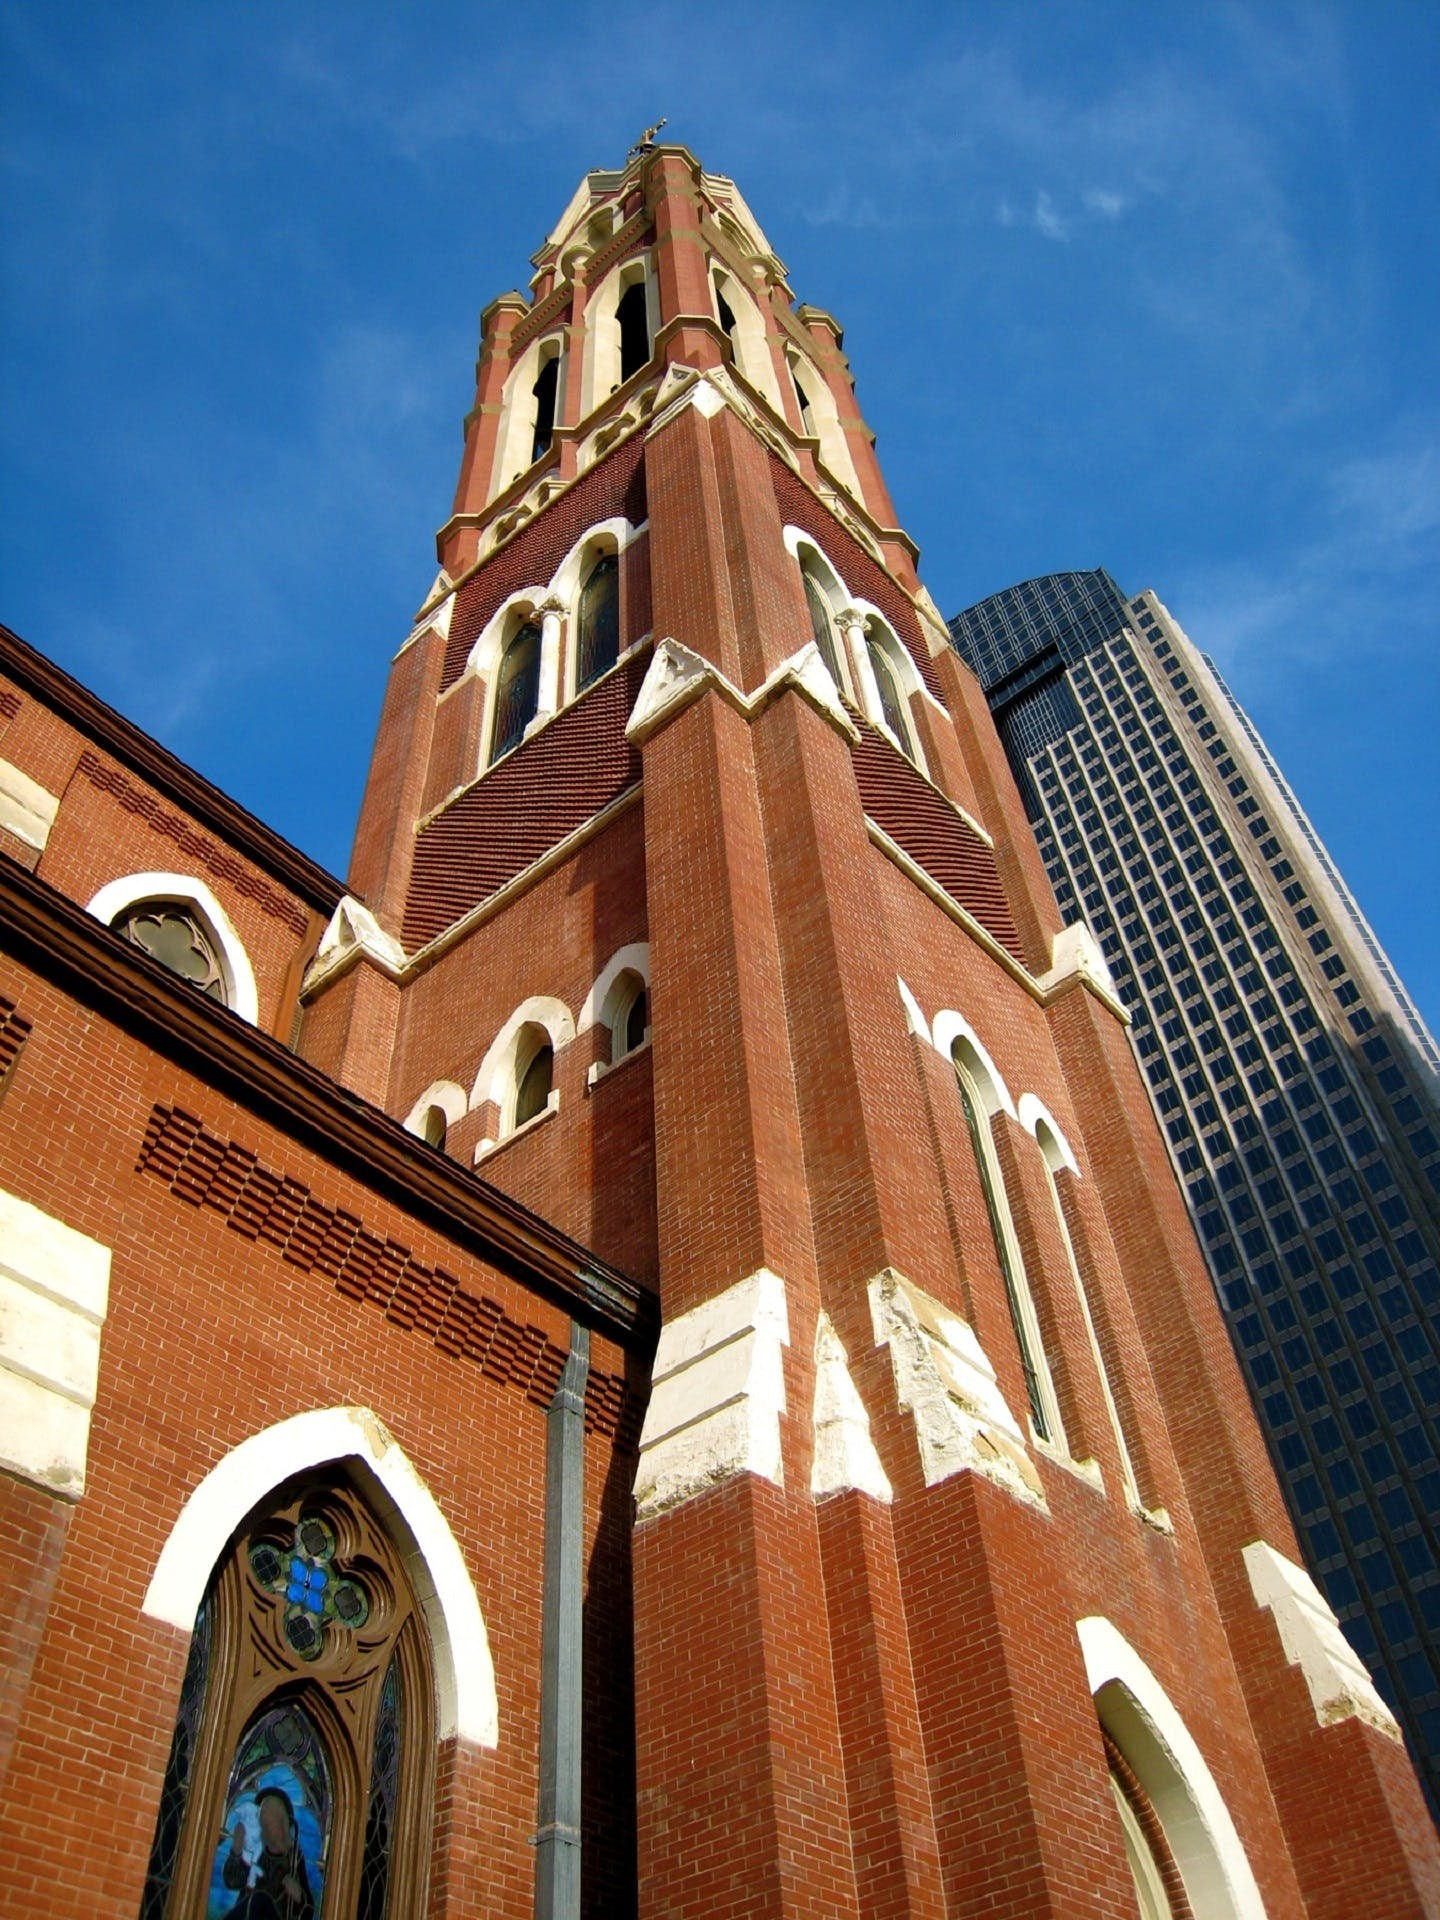 Free stock photo of architecture, arts district, buildings, cathedral church